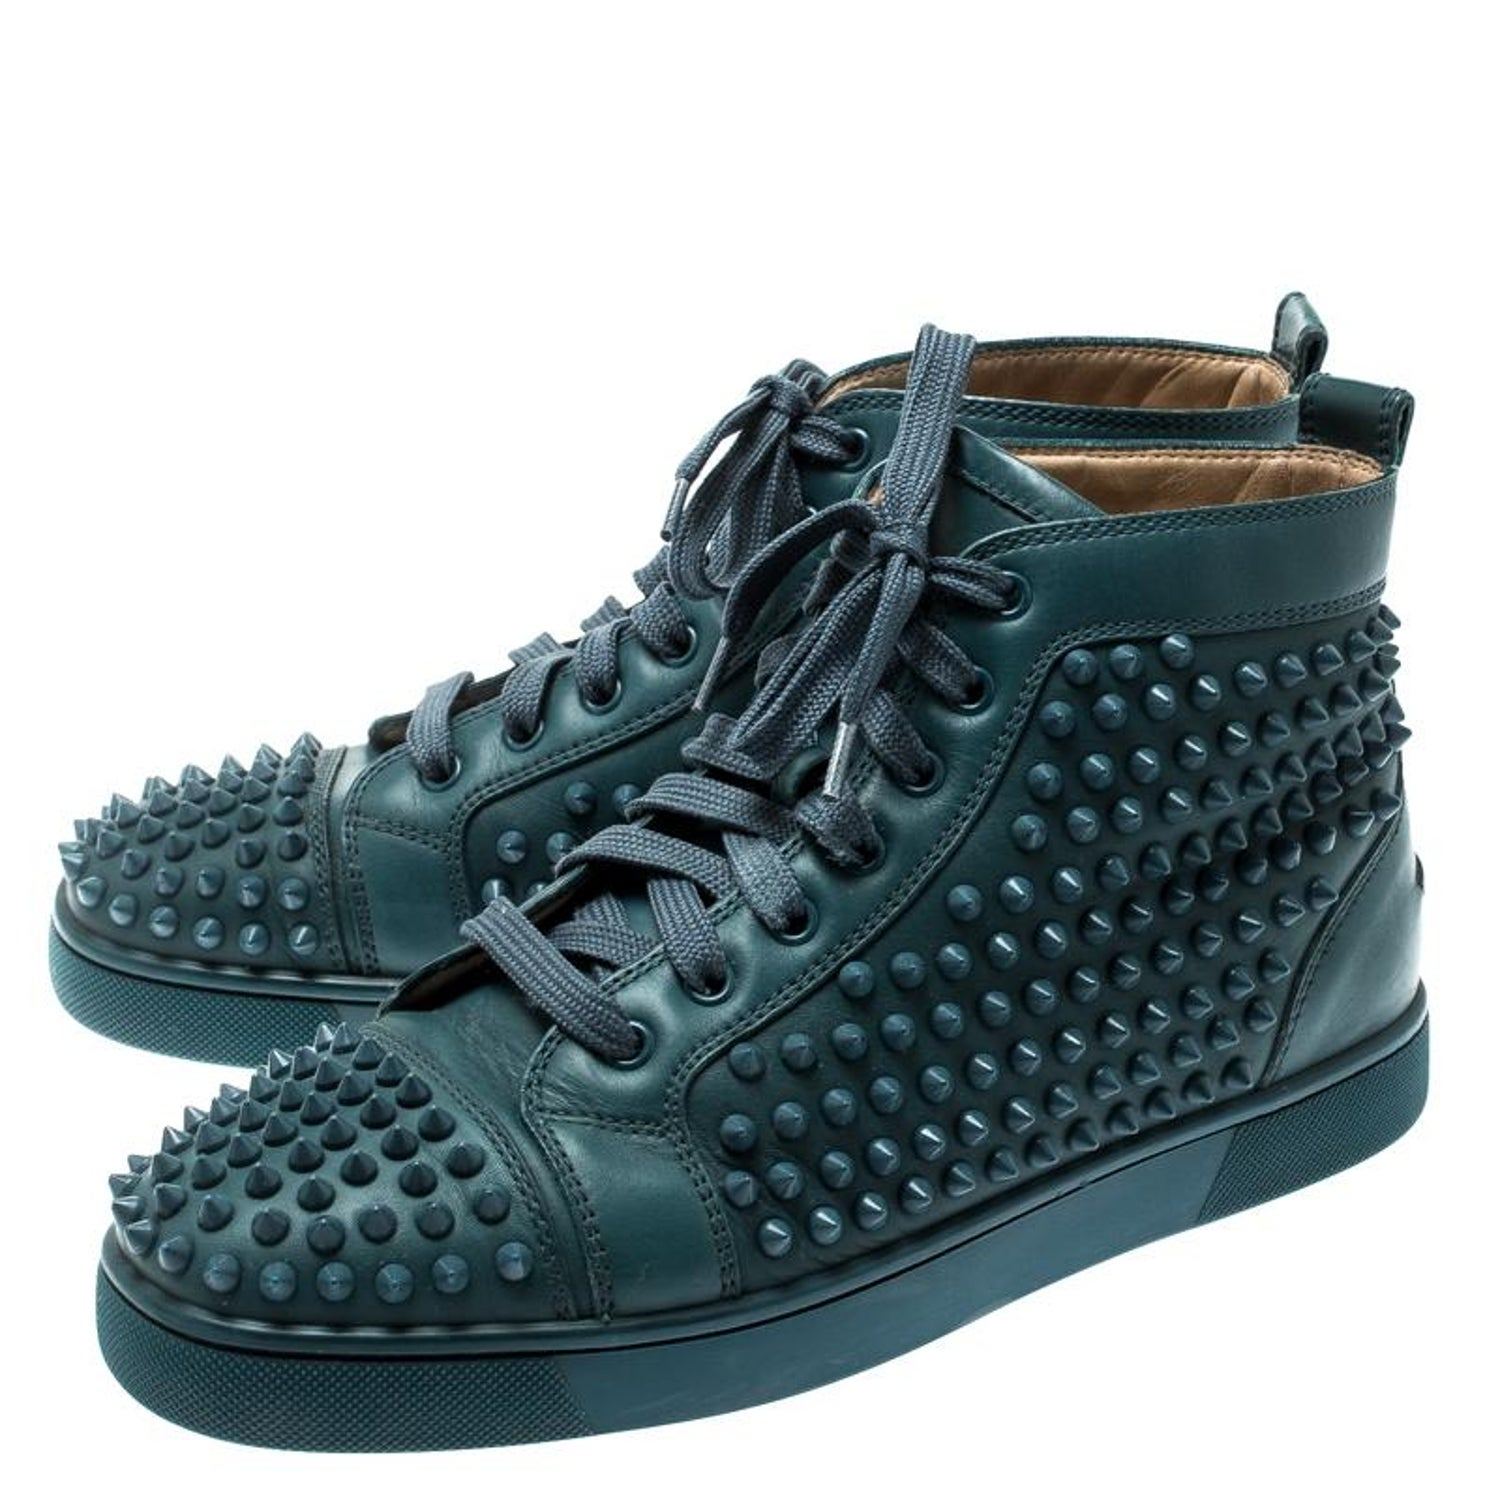 on sale cf77c 35fb1 Christian Louboutin Blue Suede Louis Spike High Top Sneakers Size 41